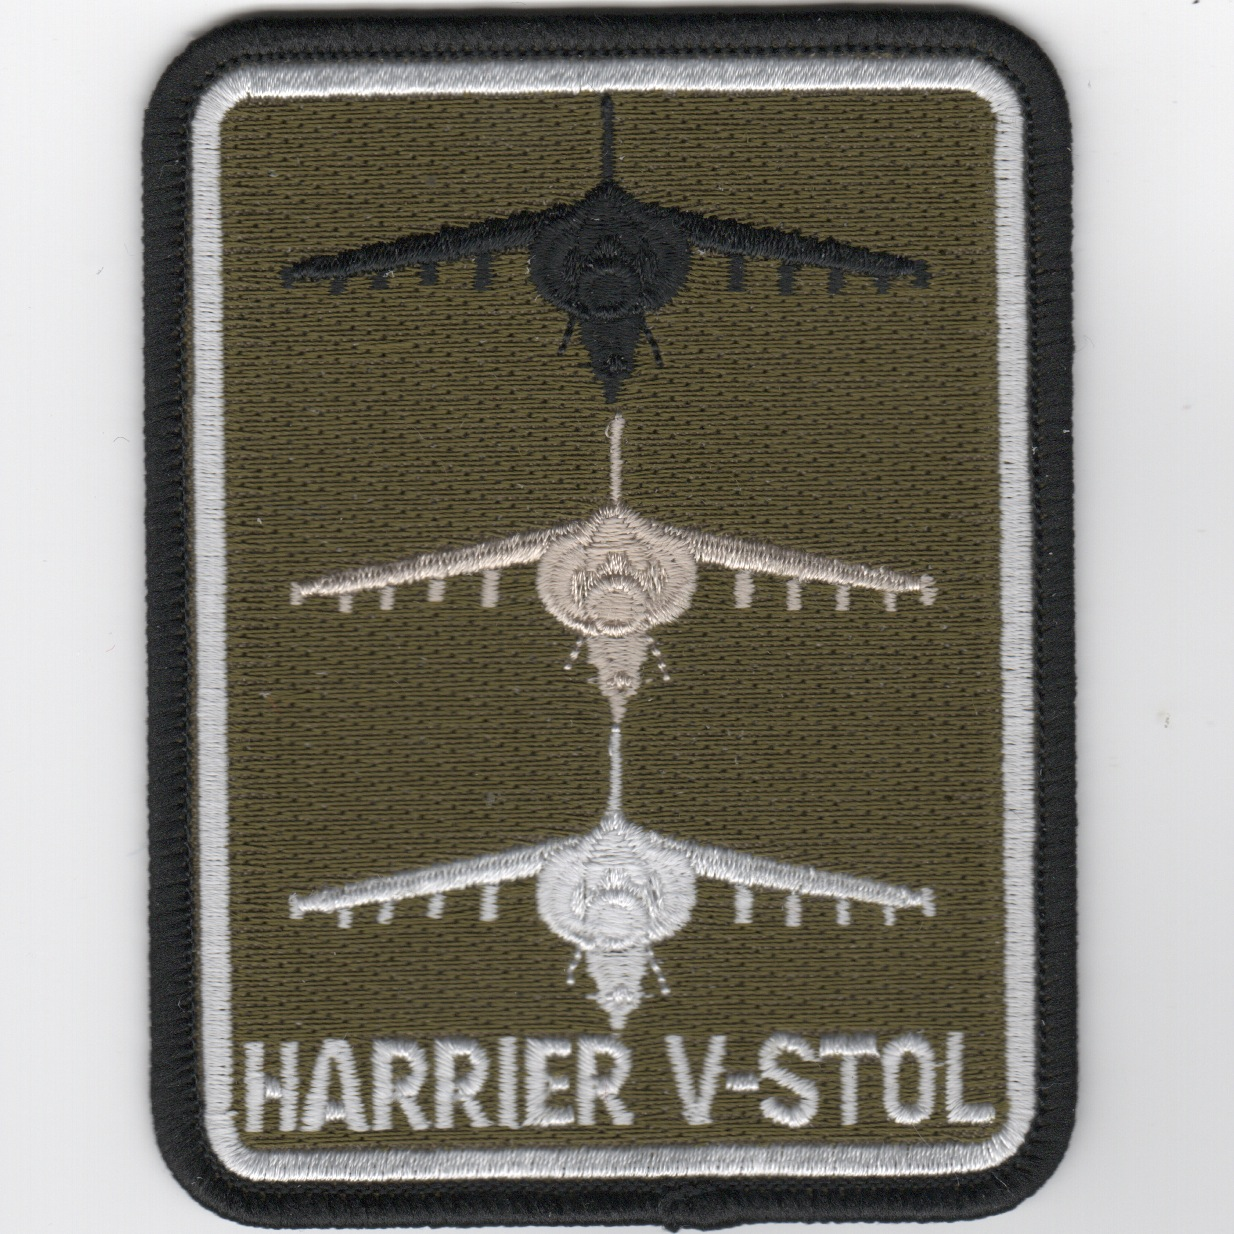 Harrier V/STOL A/C Patch (Rect/Subd)